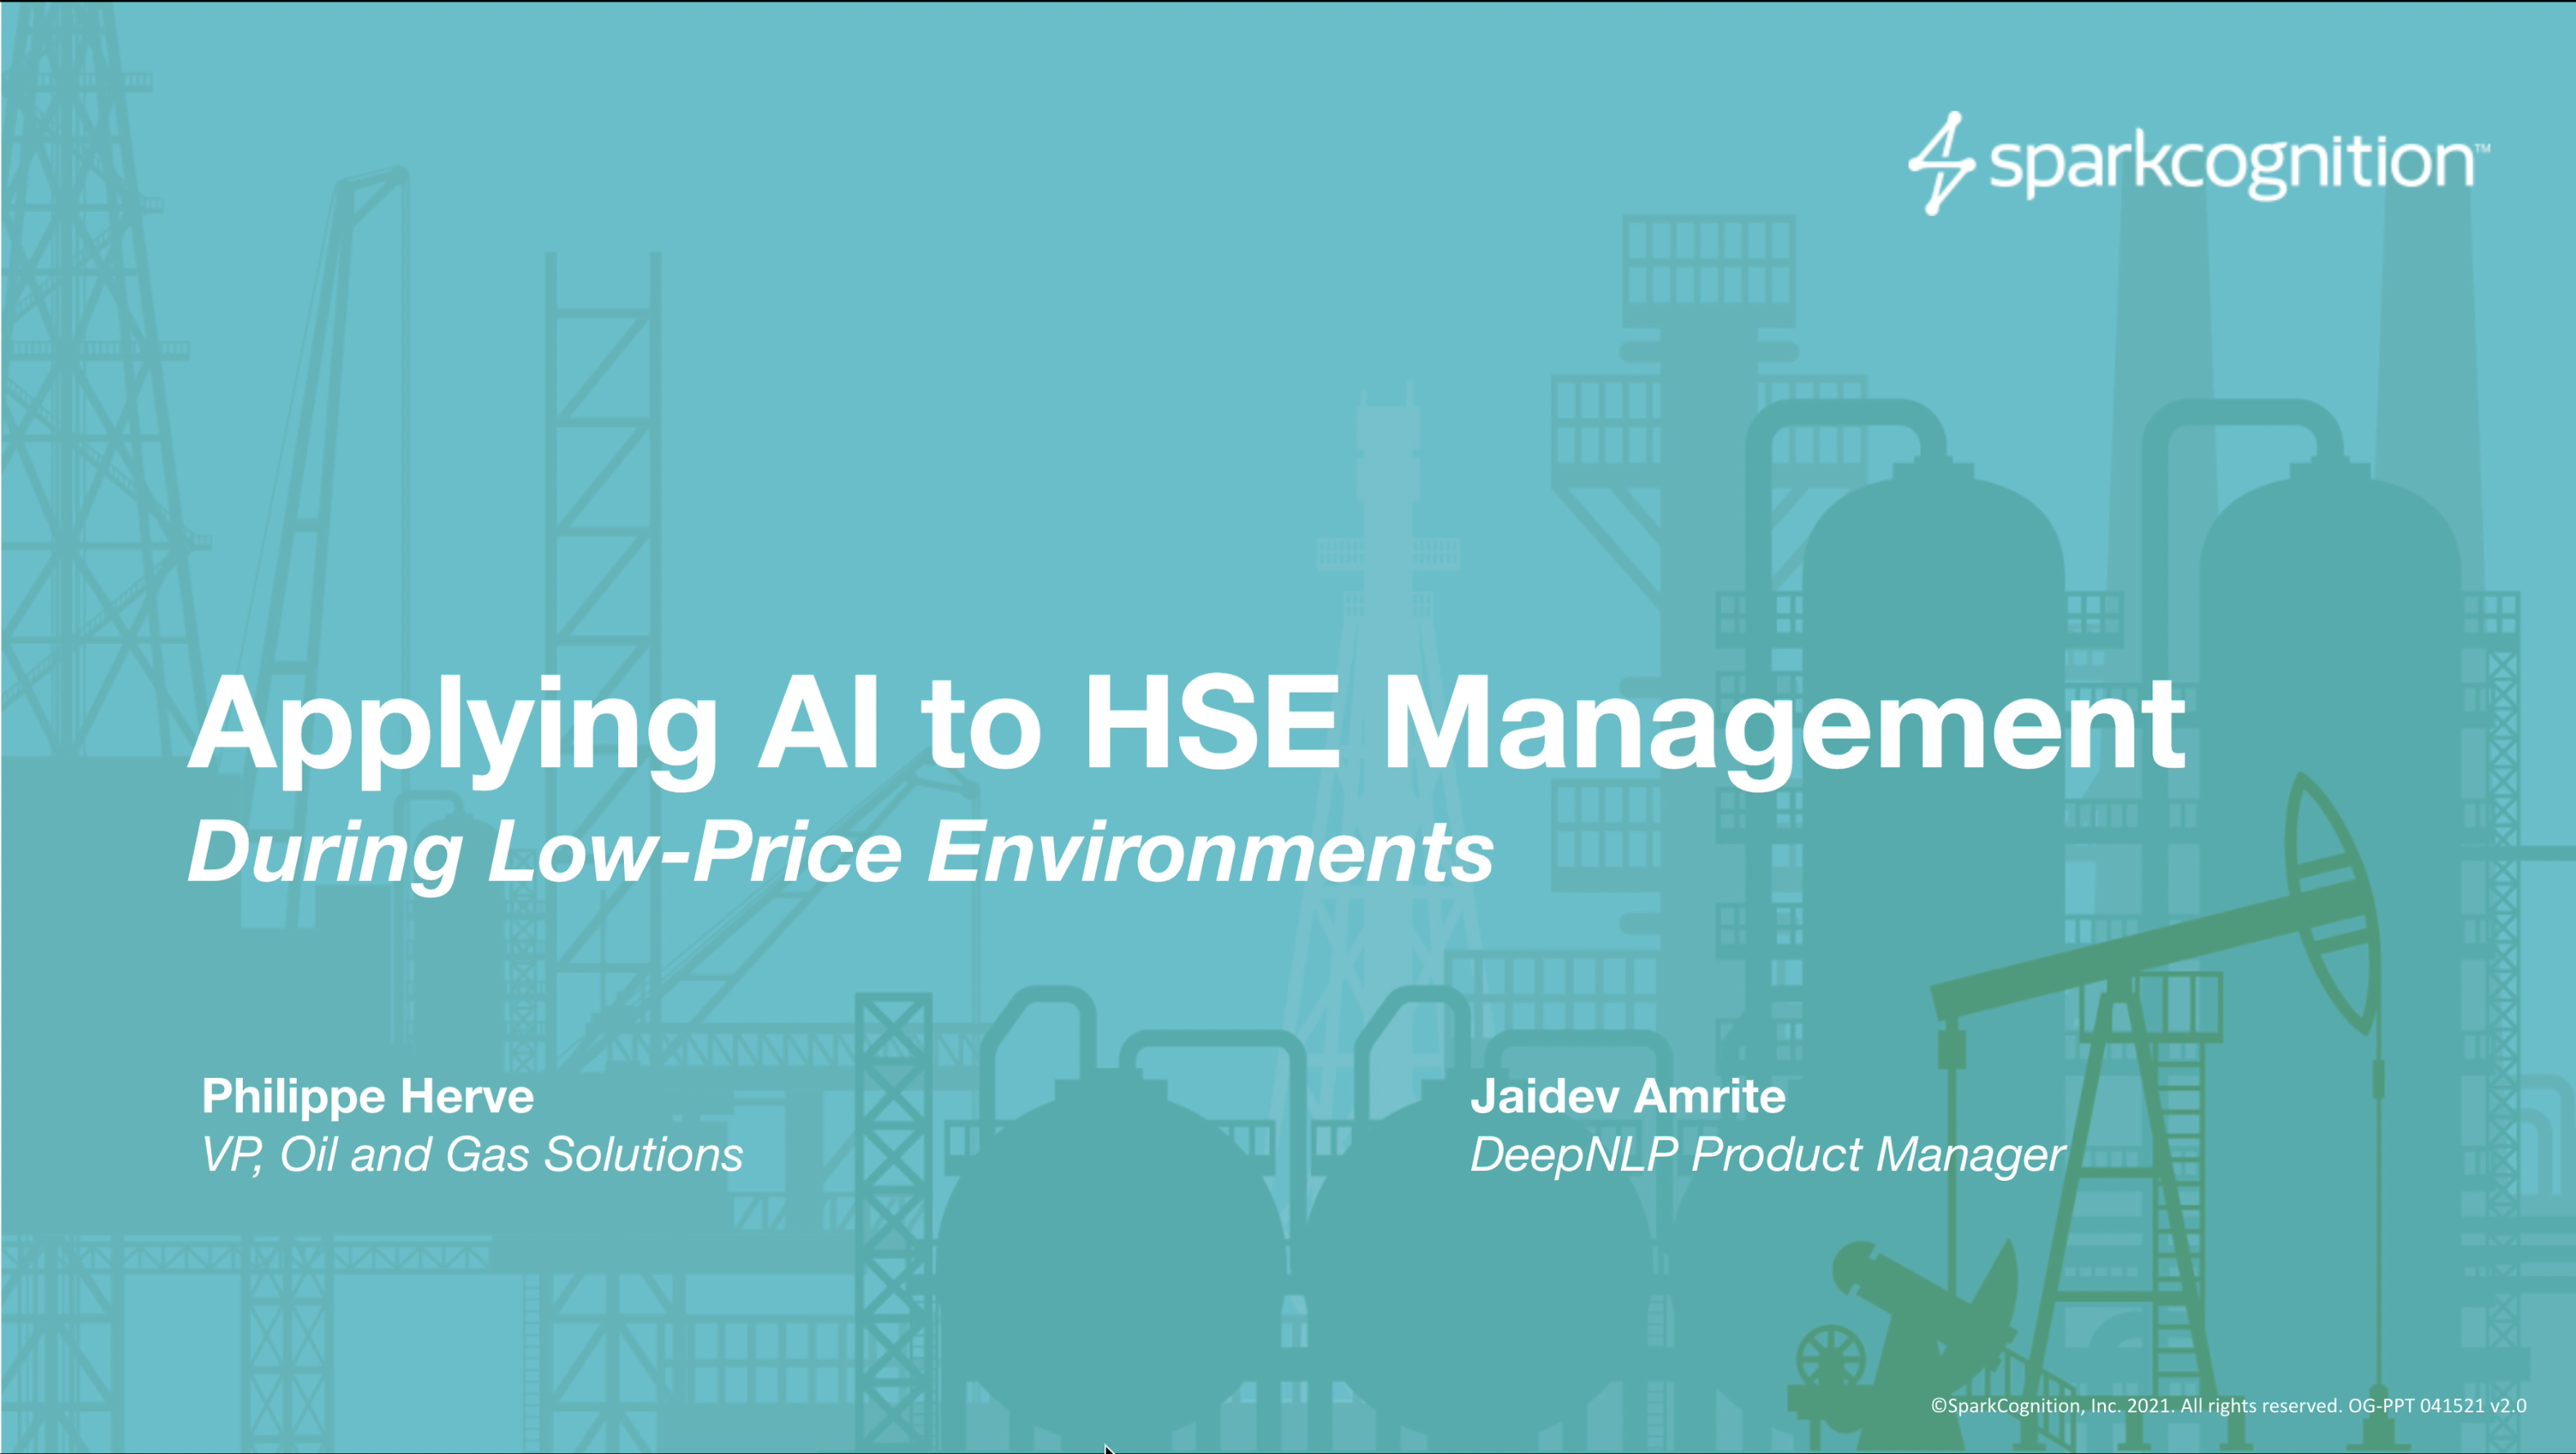 Applying AI to HSE Management